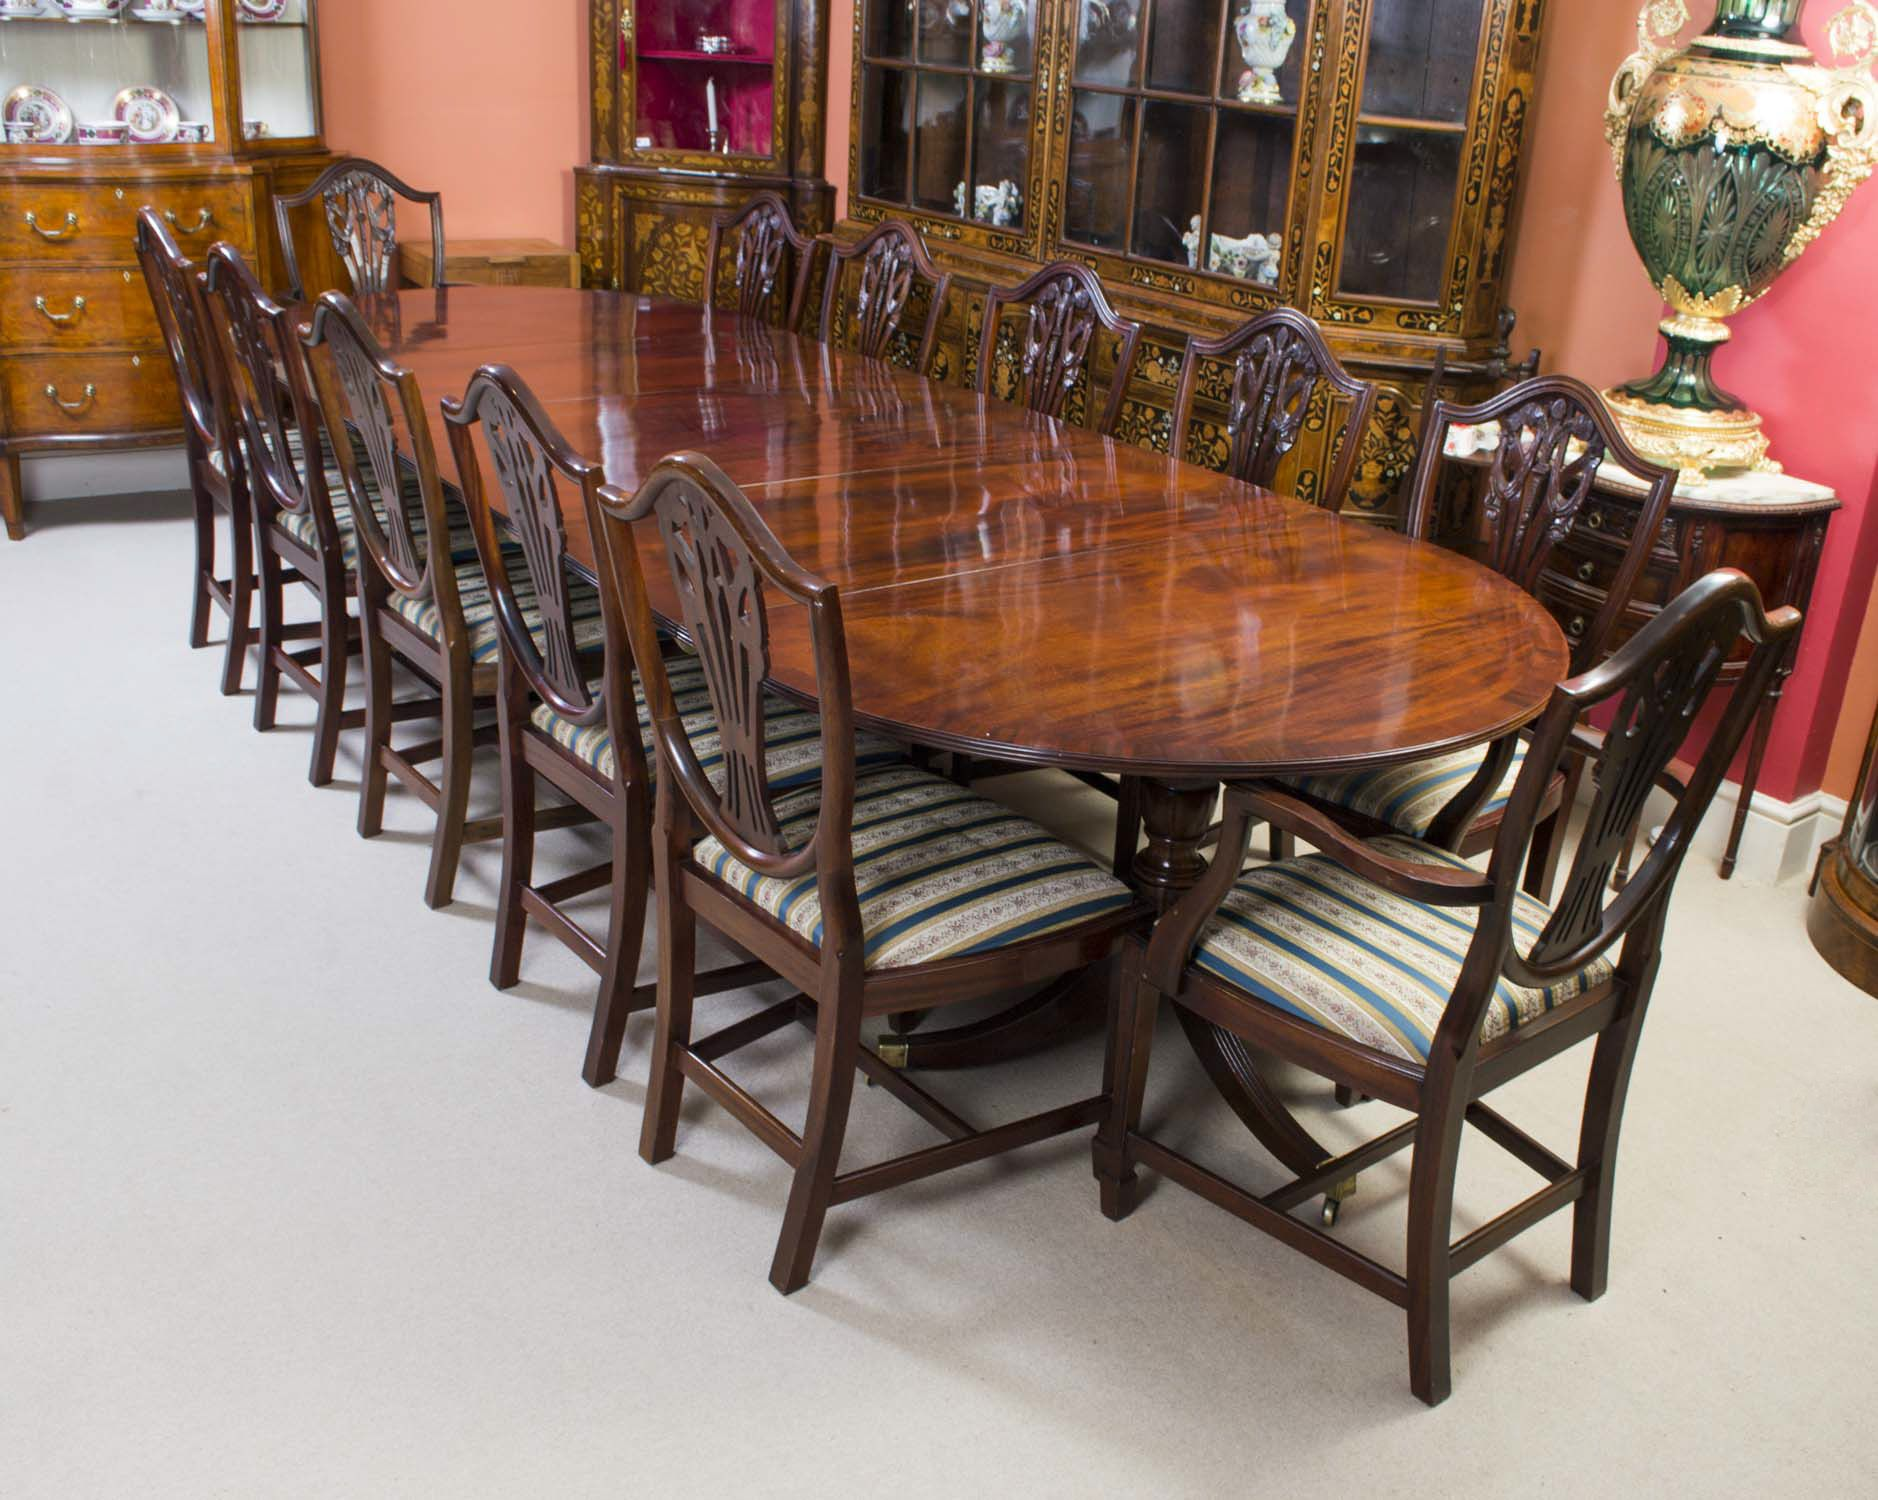 Antique Dining Room Tables And Chairs A Magnificent Antique Regency Dining Table And Set Of 12 Chairs